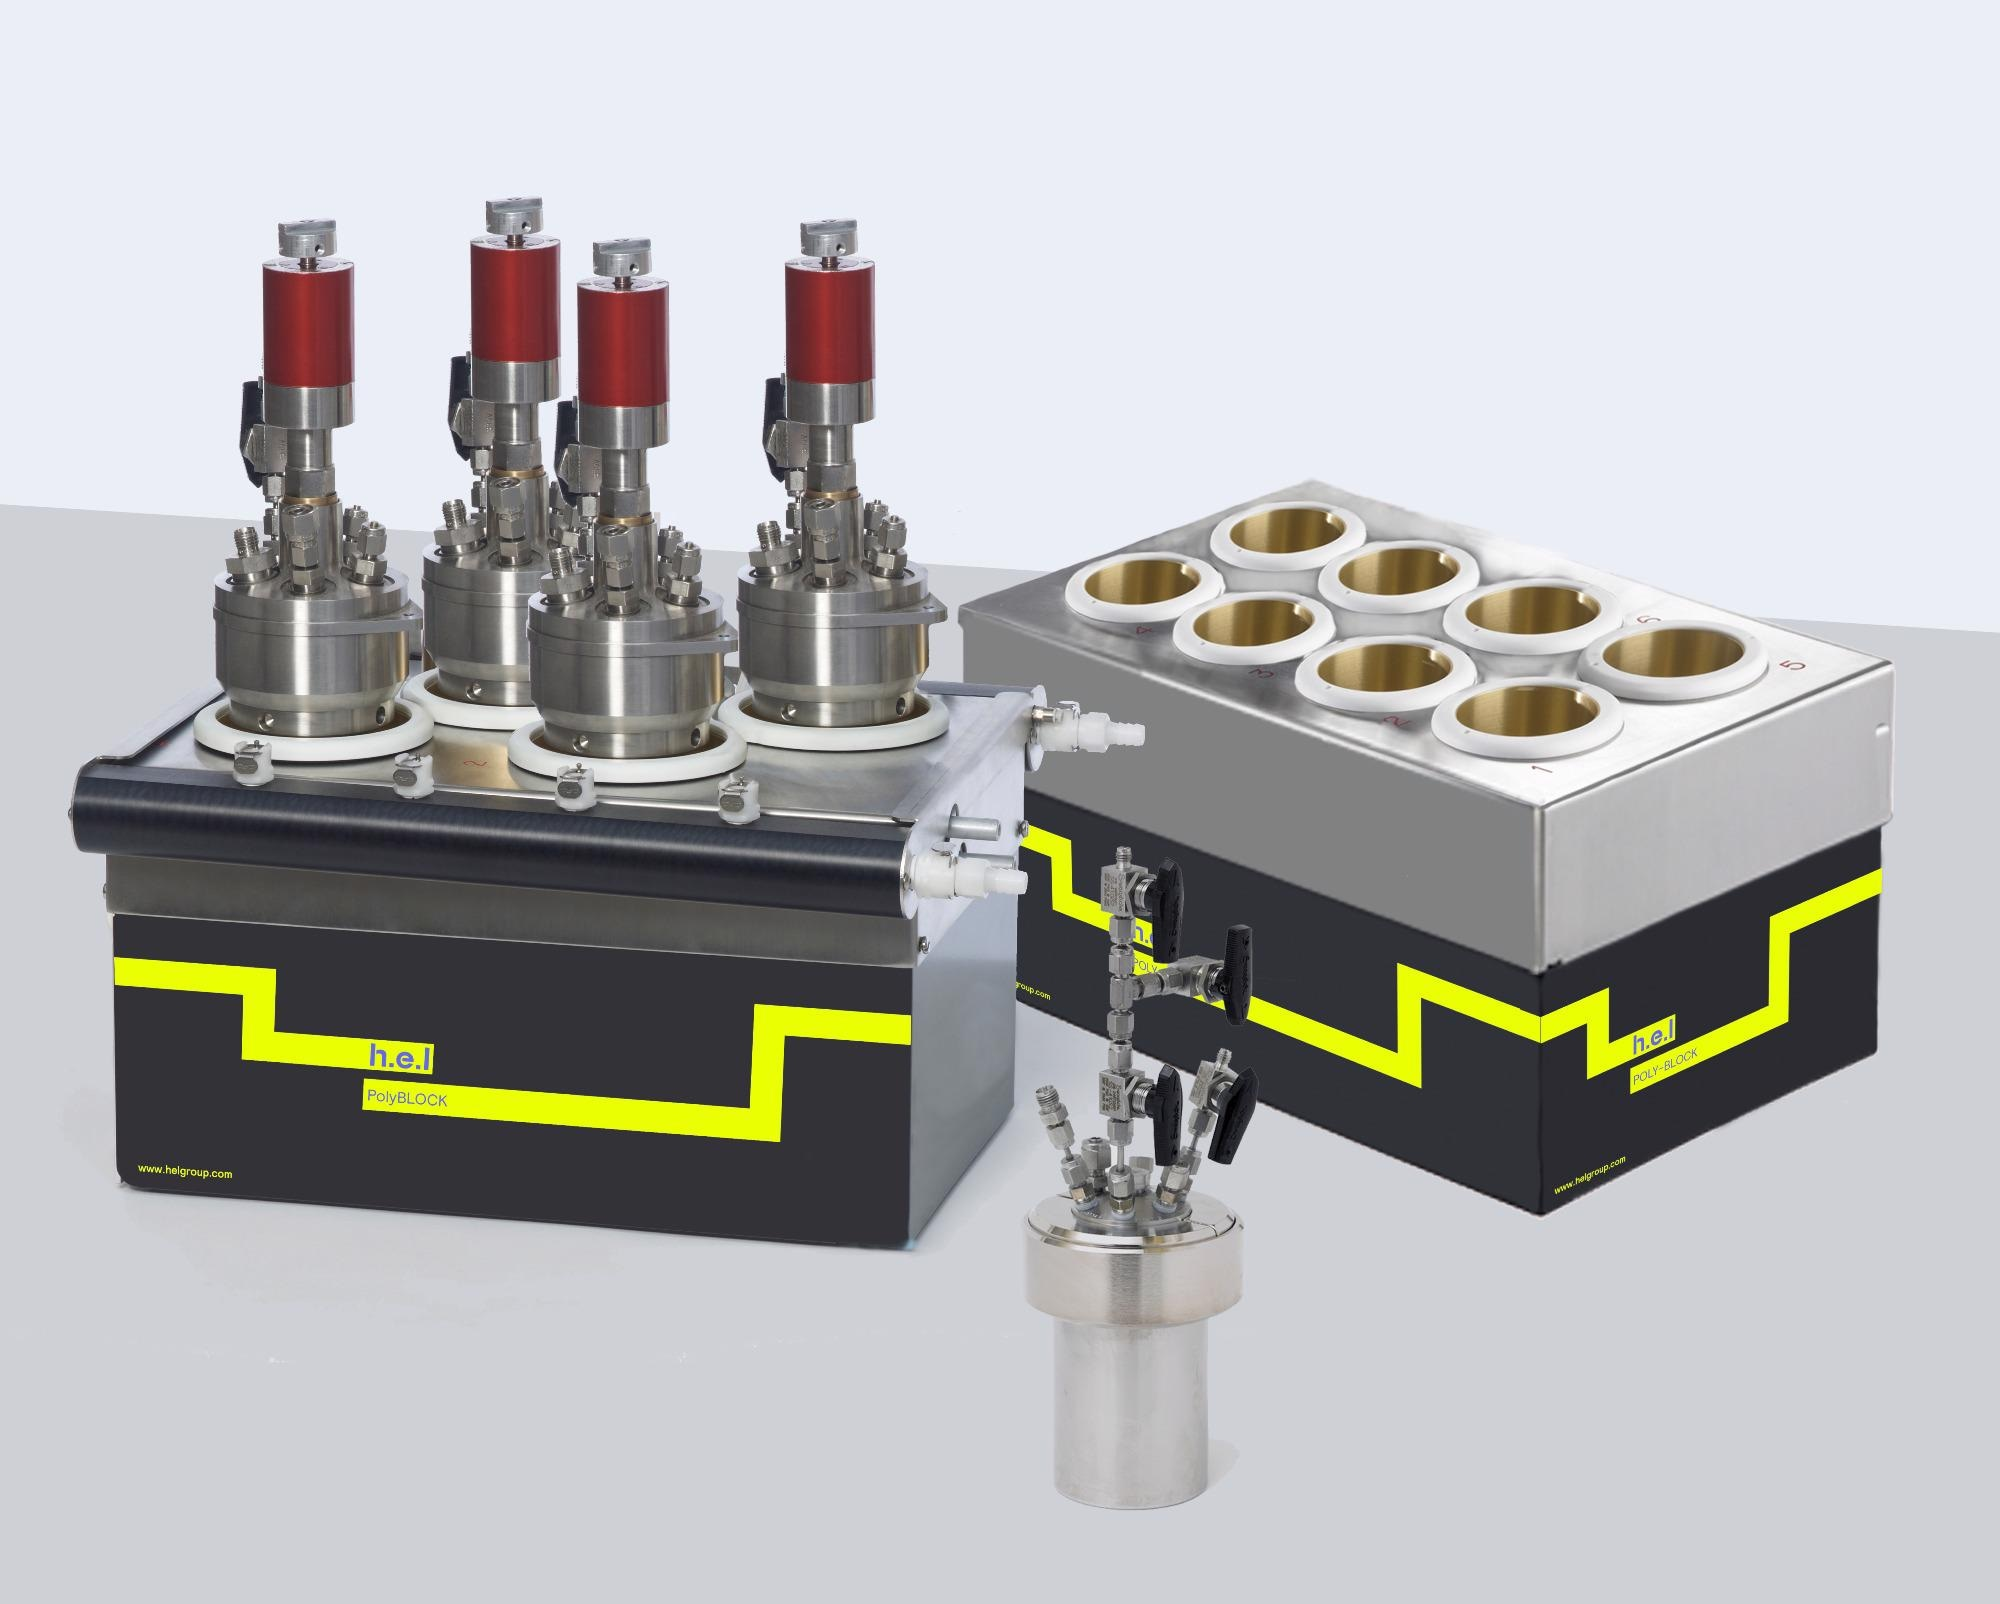 PolyBLOCK High Pressure: A High Pressure, Bench Top, Automated Parallel Synthesis Platform